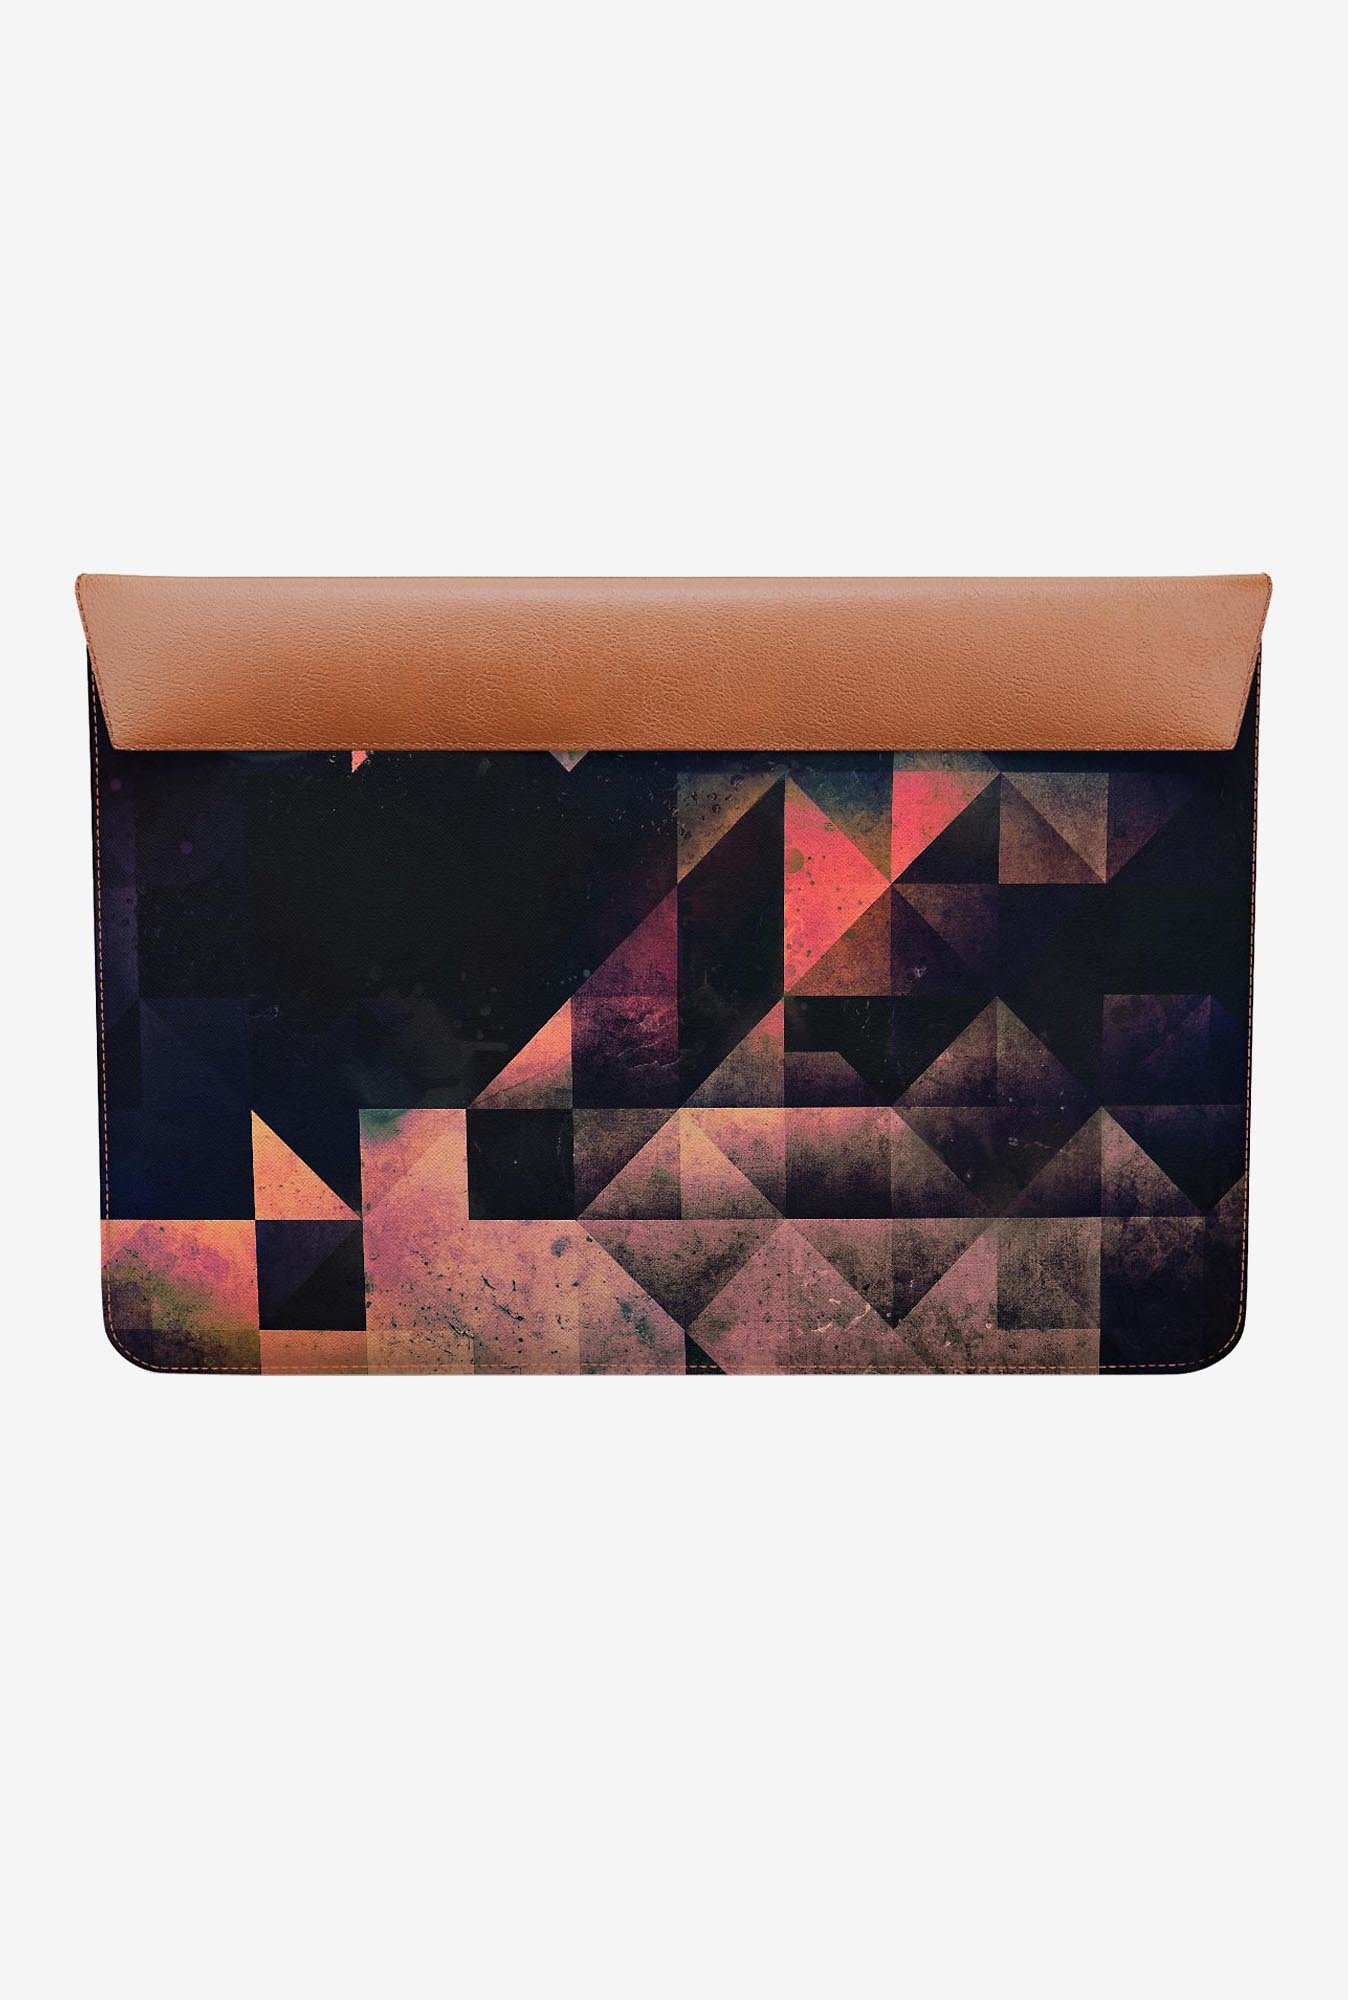 "DailyObjects Nyxt Chyptyr Macbook Air 11"" Envelope Sleeve"